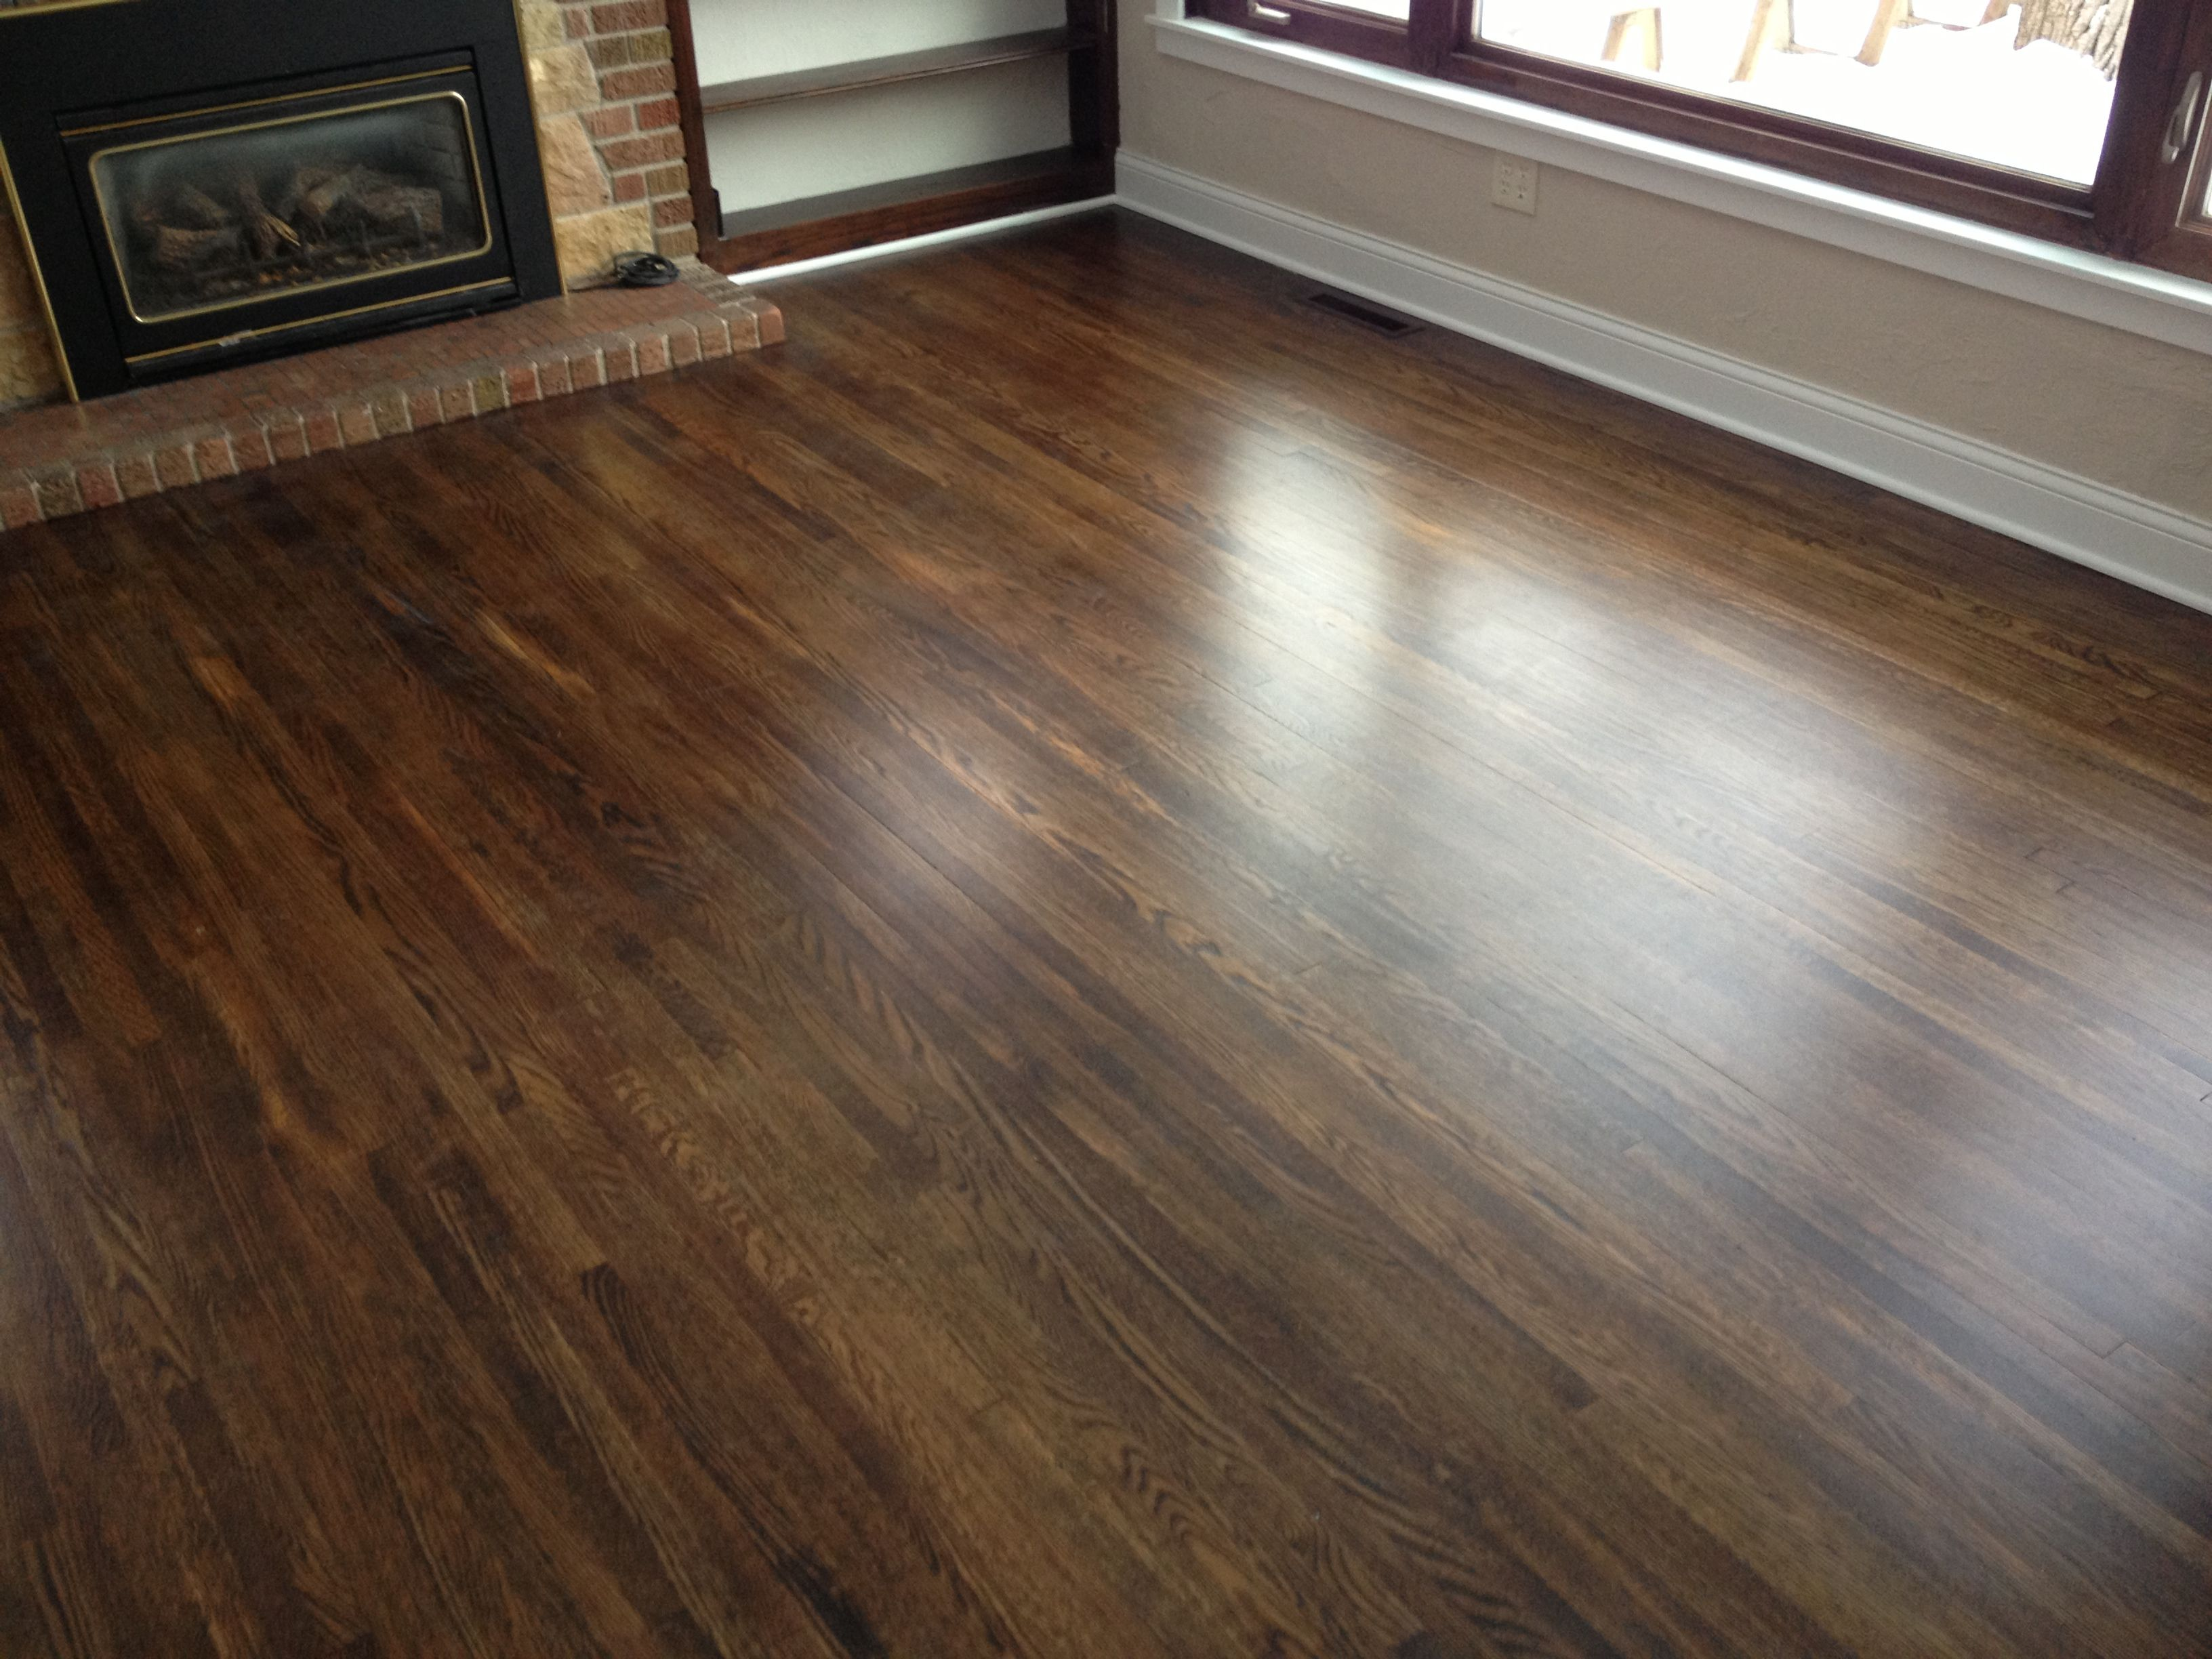 Walnut hardwood floor stain gurus floor for Different colors of hardwood floors